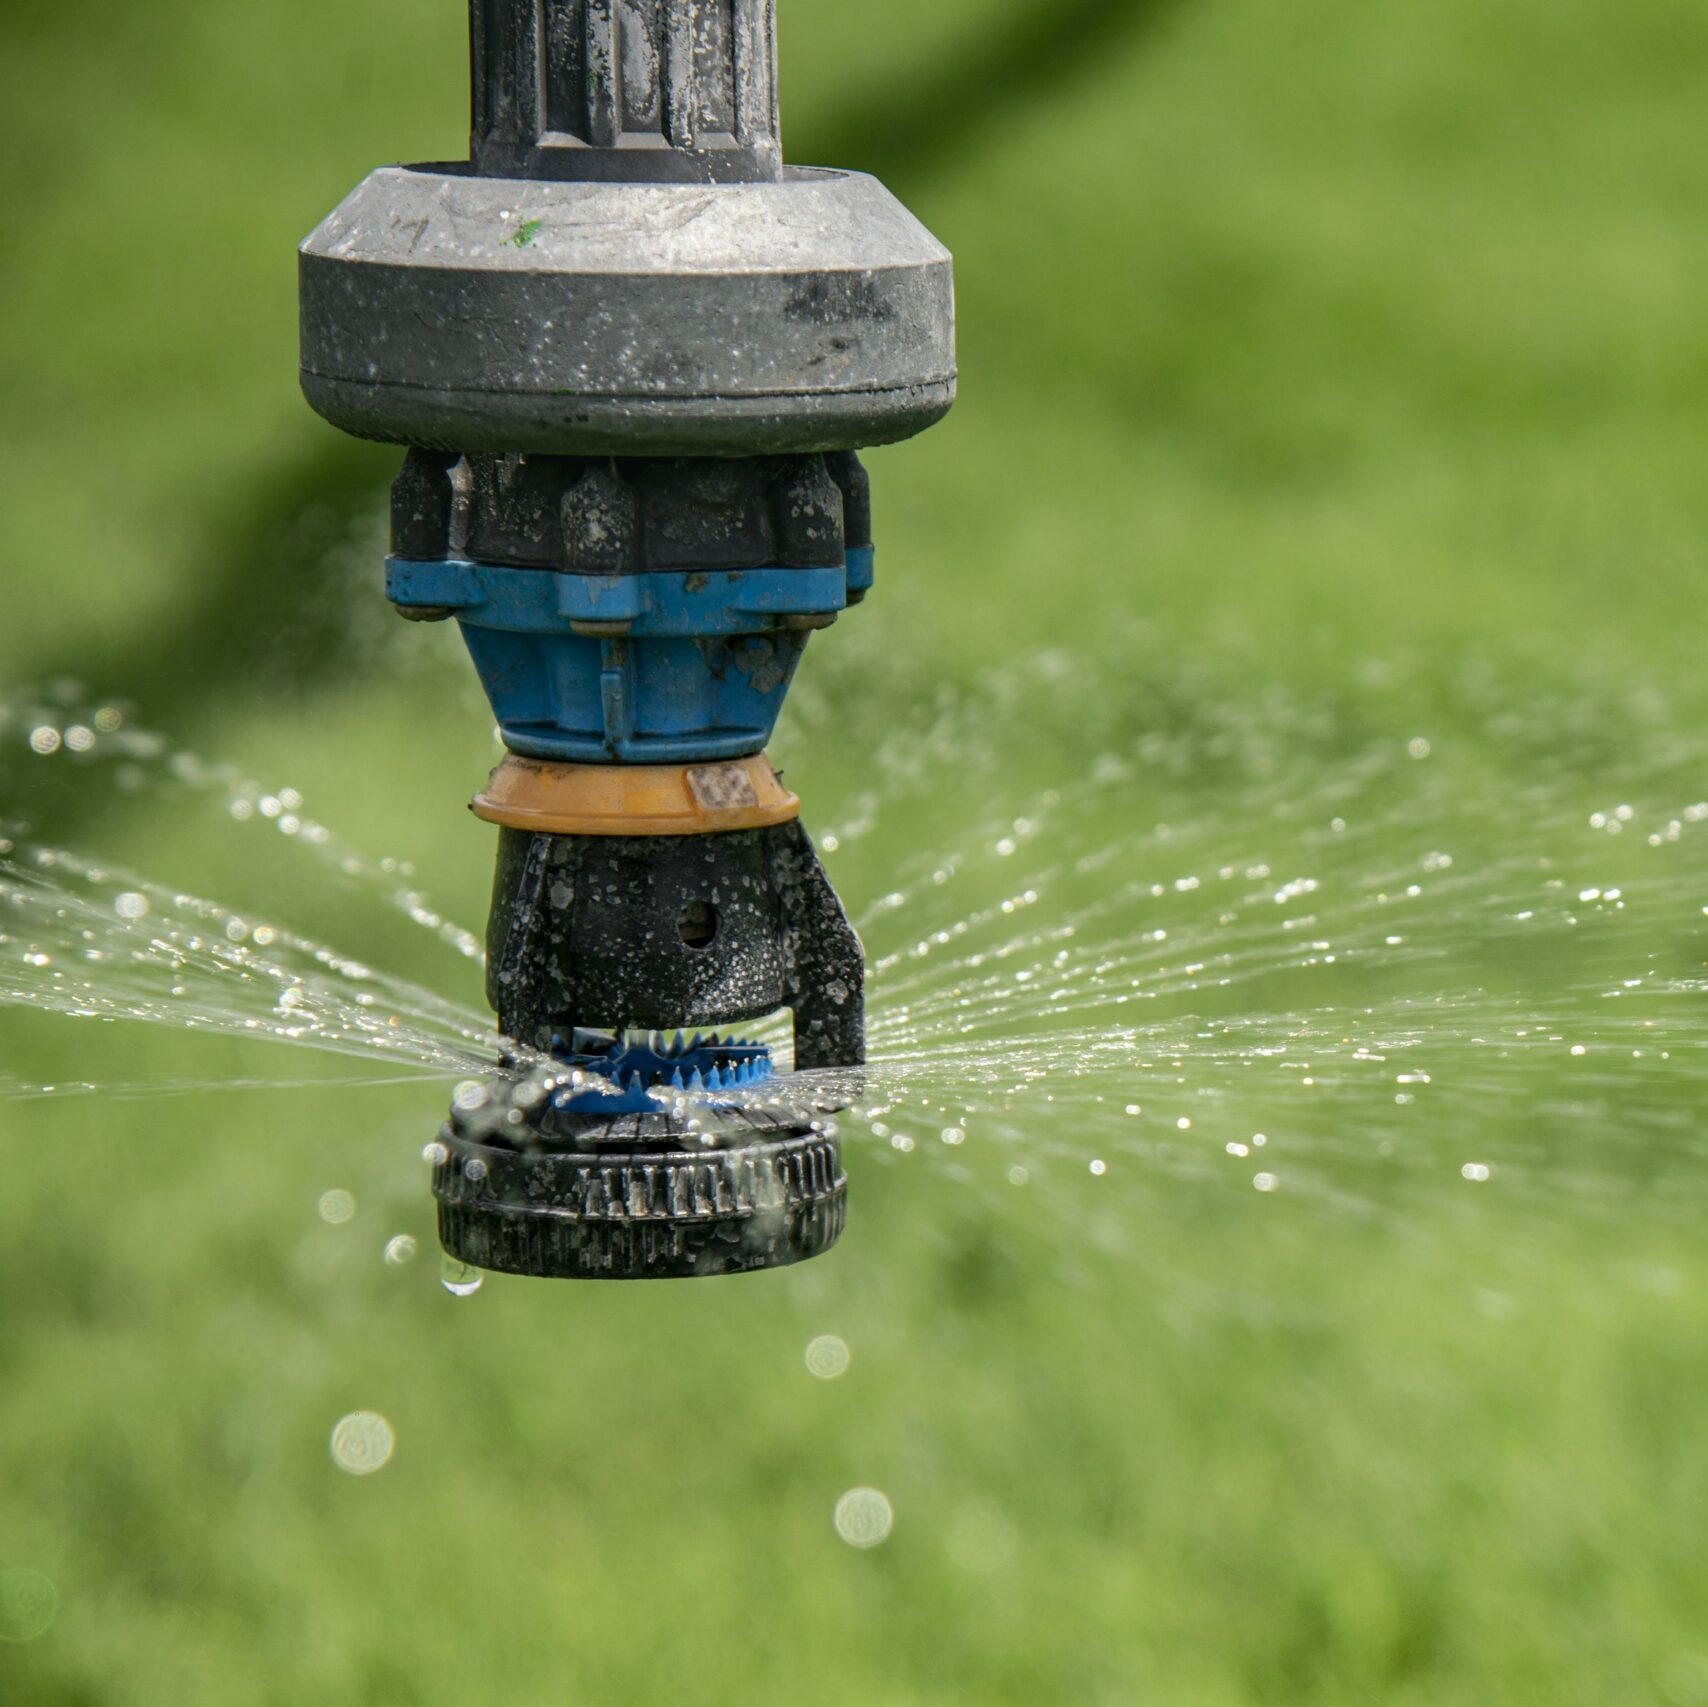 Close up of a water sprinkler